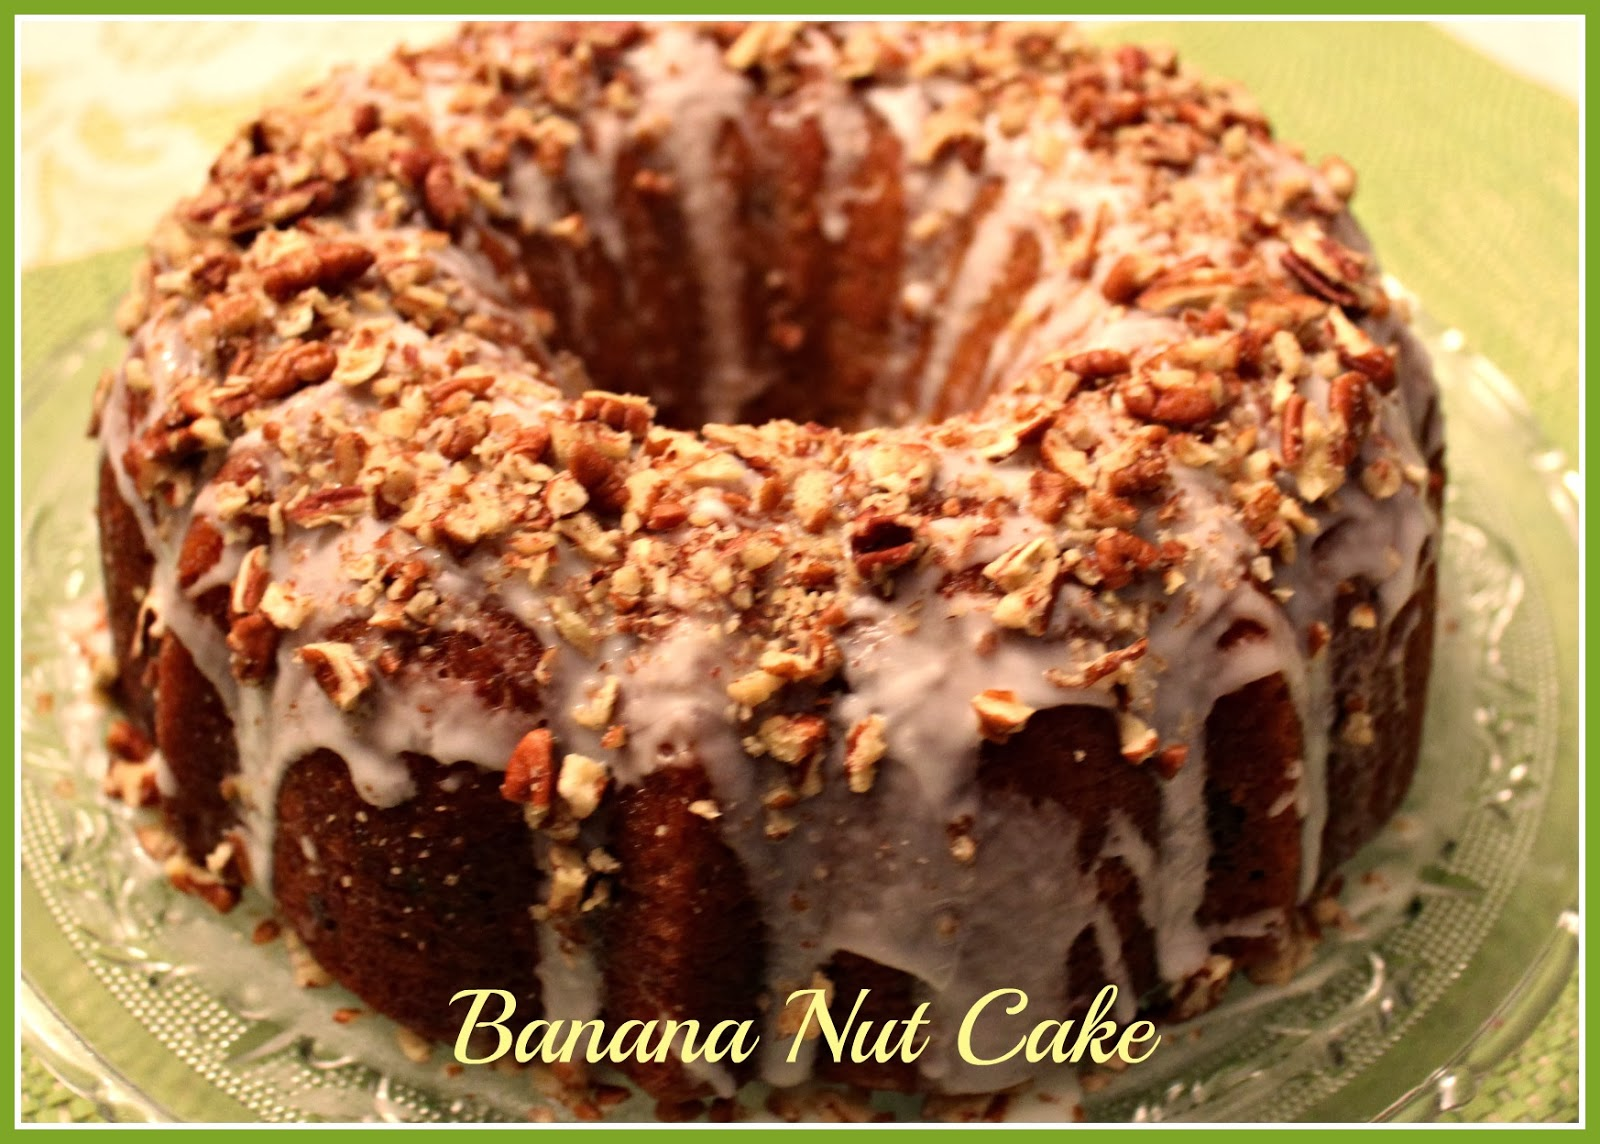 How To Make Nut Cake